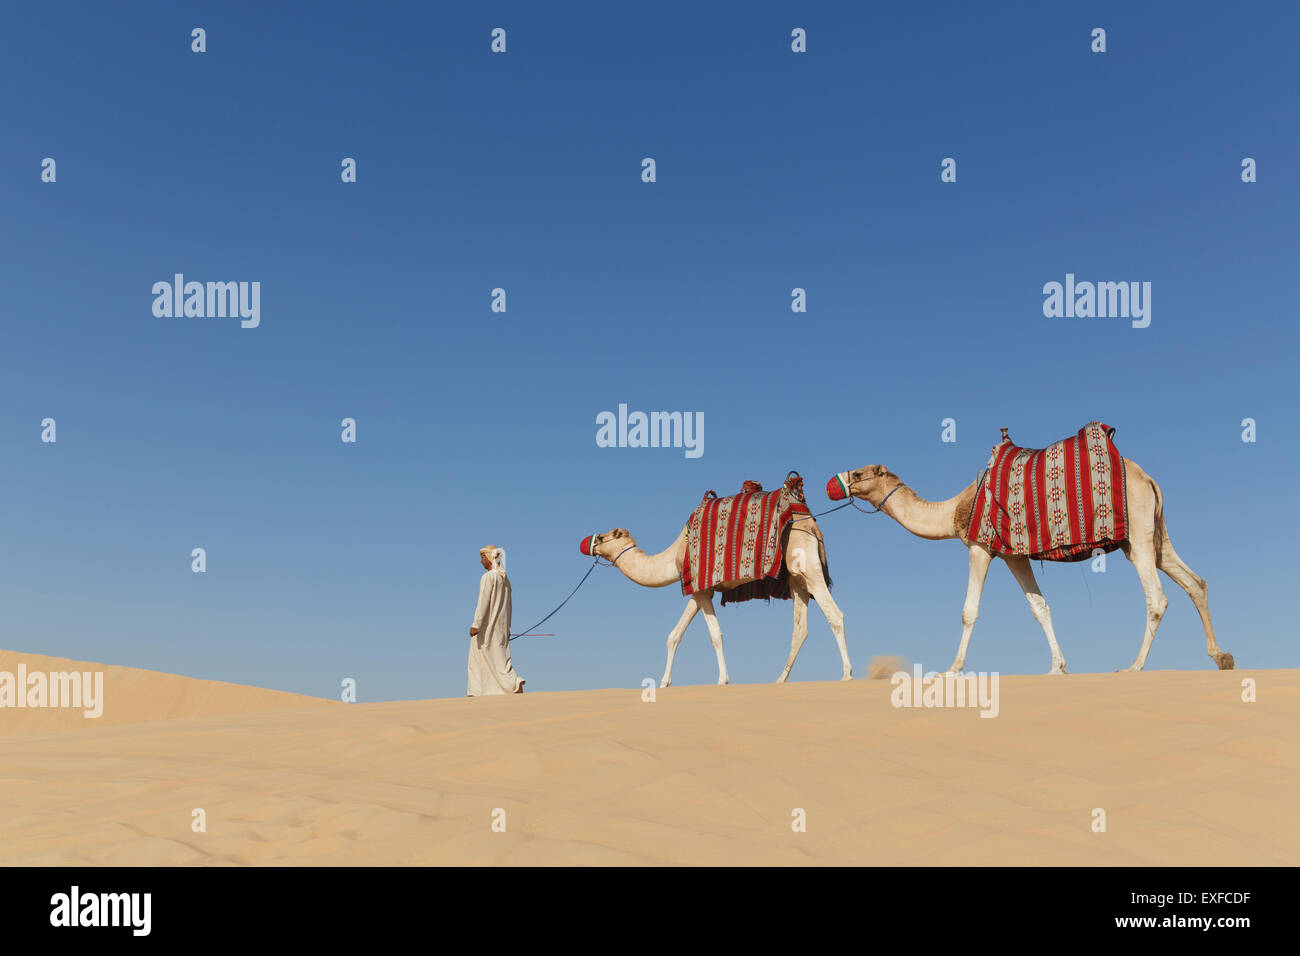 Bedouin walking with two camels in desert, Dubai, United Arab Emirates Stock Photo